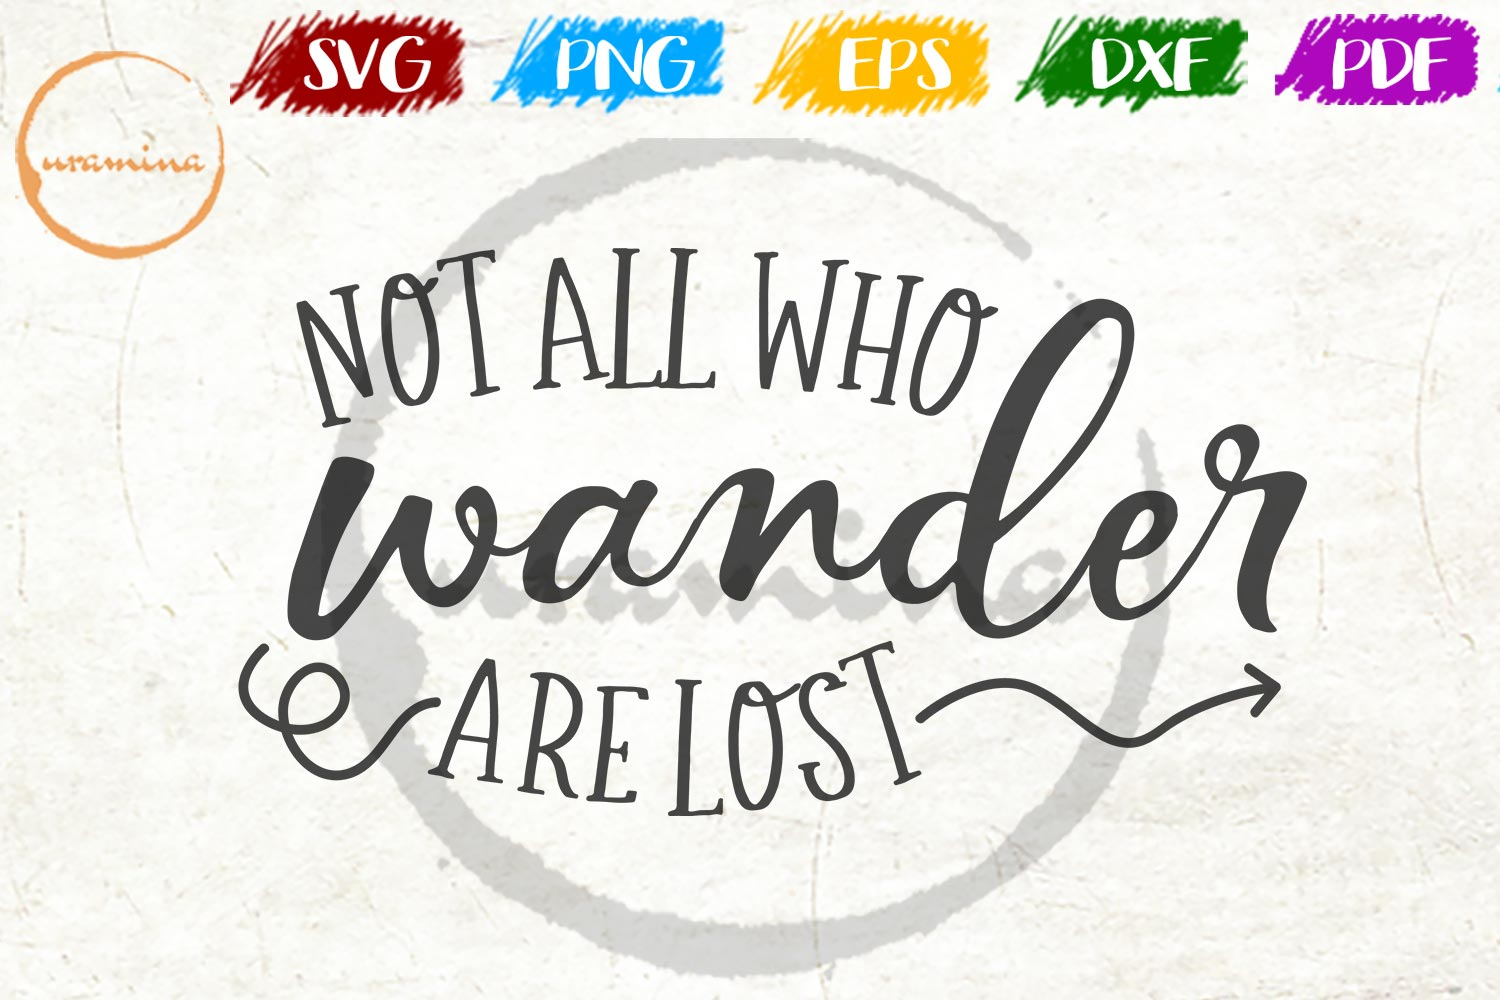 Download Free Not All Who Wander Are Lost Graphic By Uramina Creative Fabrica for Cricut Explore, Silhouette and other cutting machines.